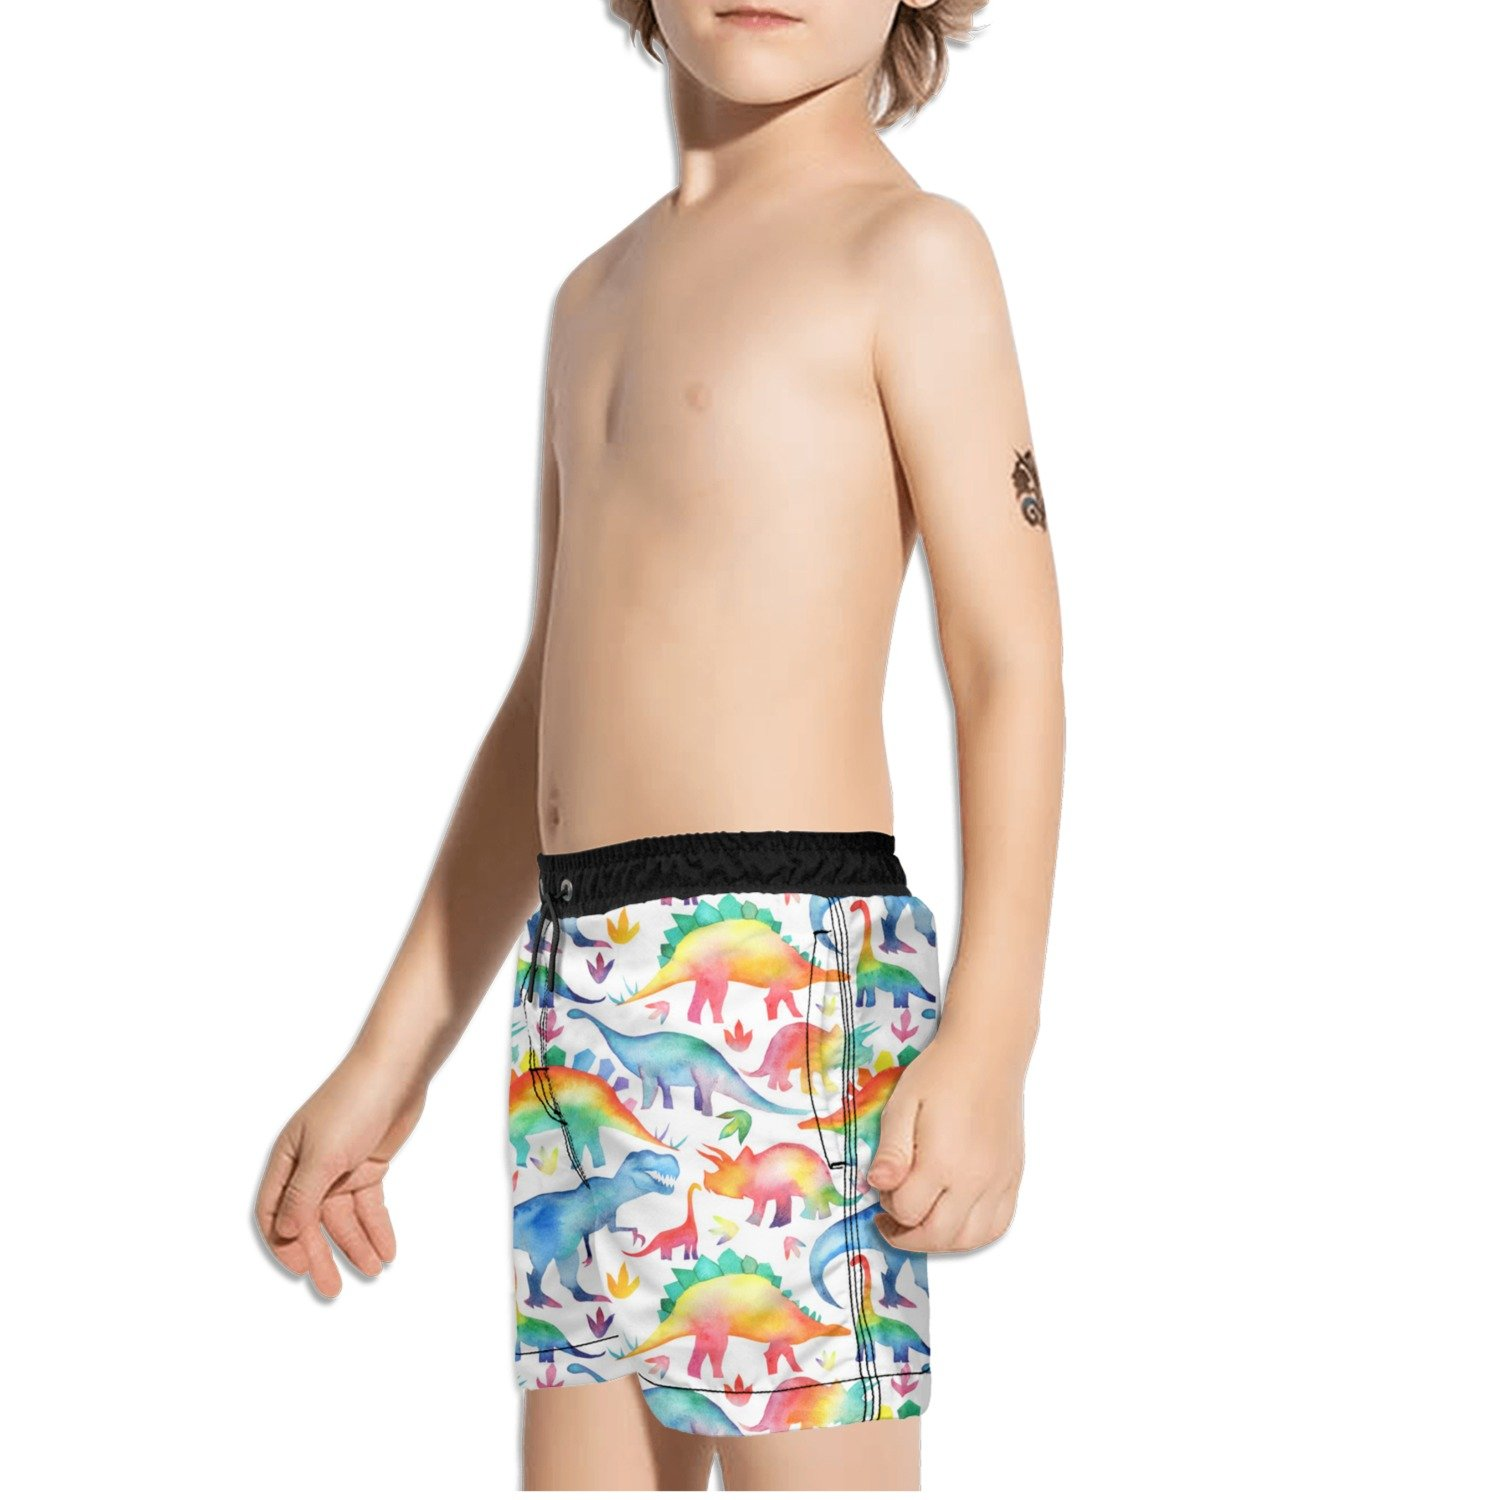 FullBo Rainbow Watercolour Dinosaurs Little Boys Short Swim Trunks Quick Dry Beach Shorts